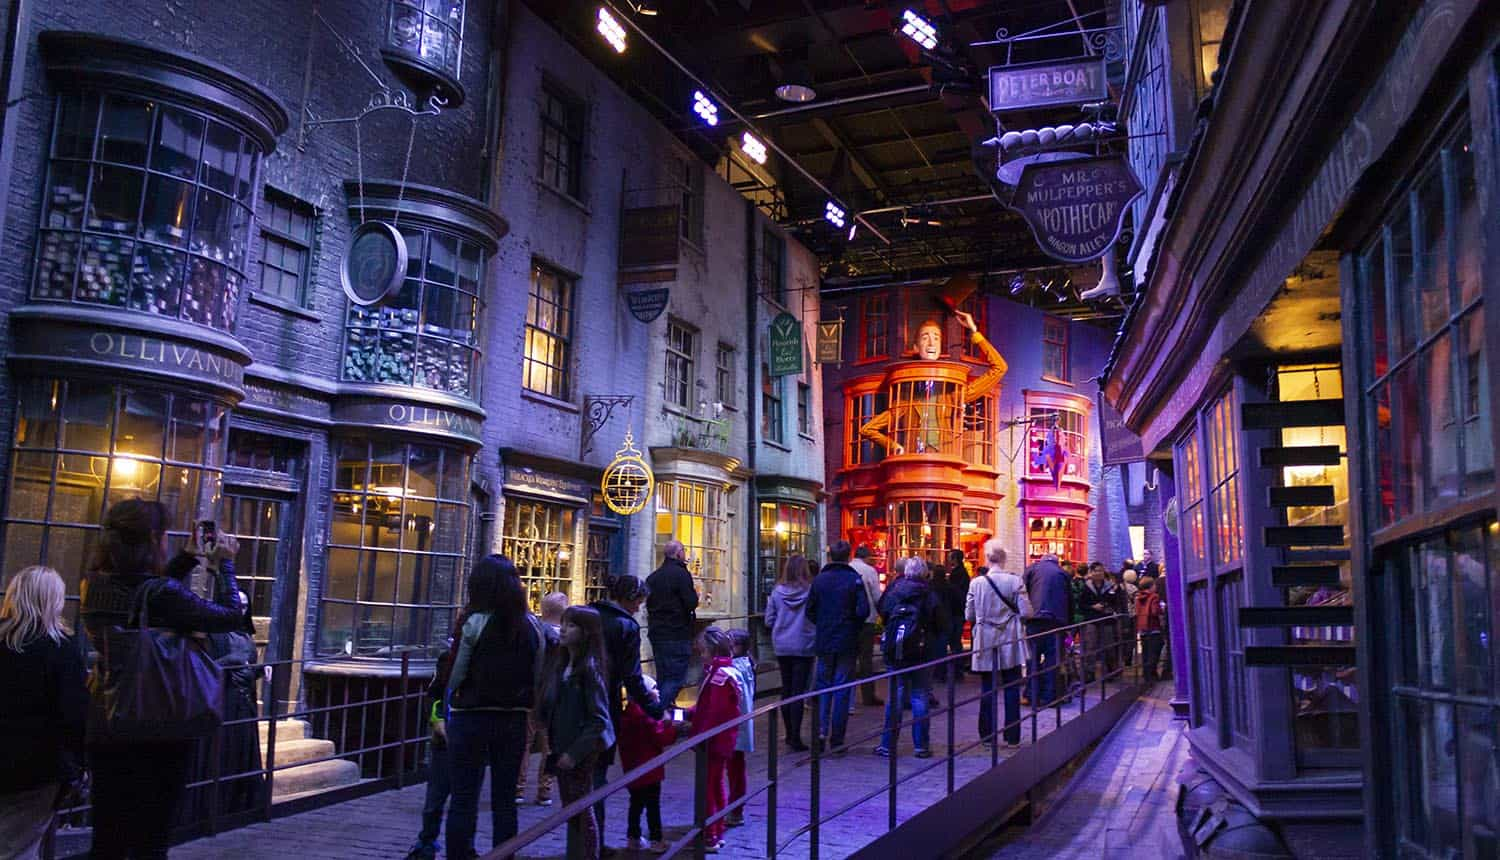 Warner Bros Studios London tour, with the sets and original material of the Harry Potter movies showing cybersecurity professionals need to address single points of failure